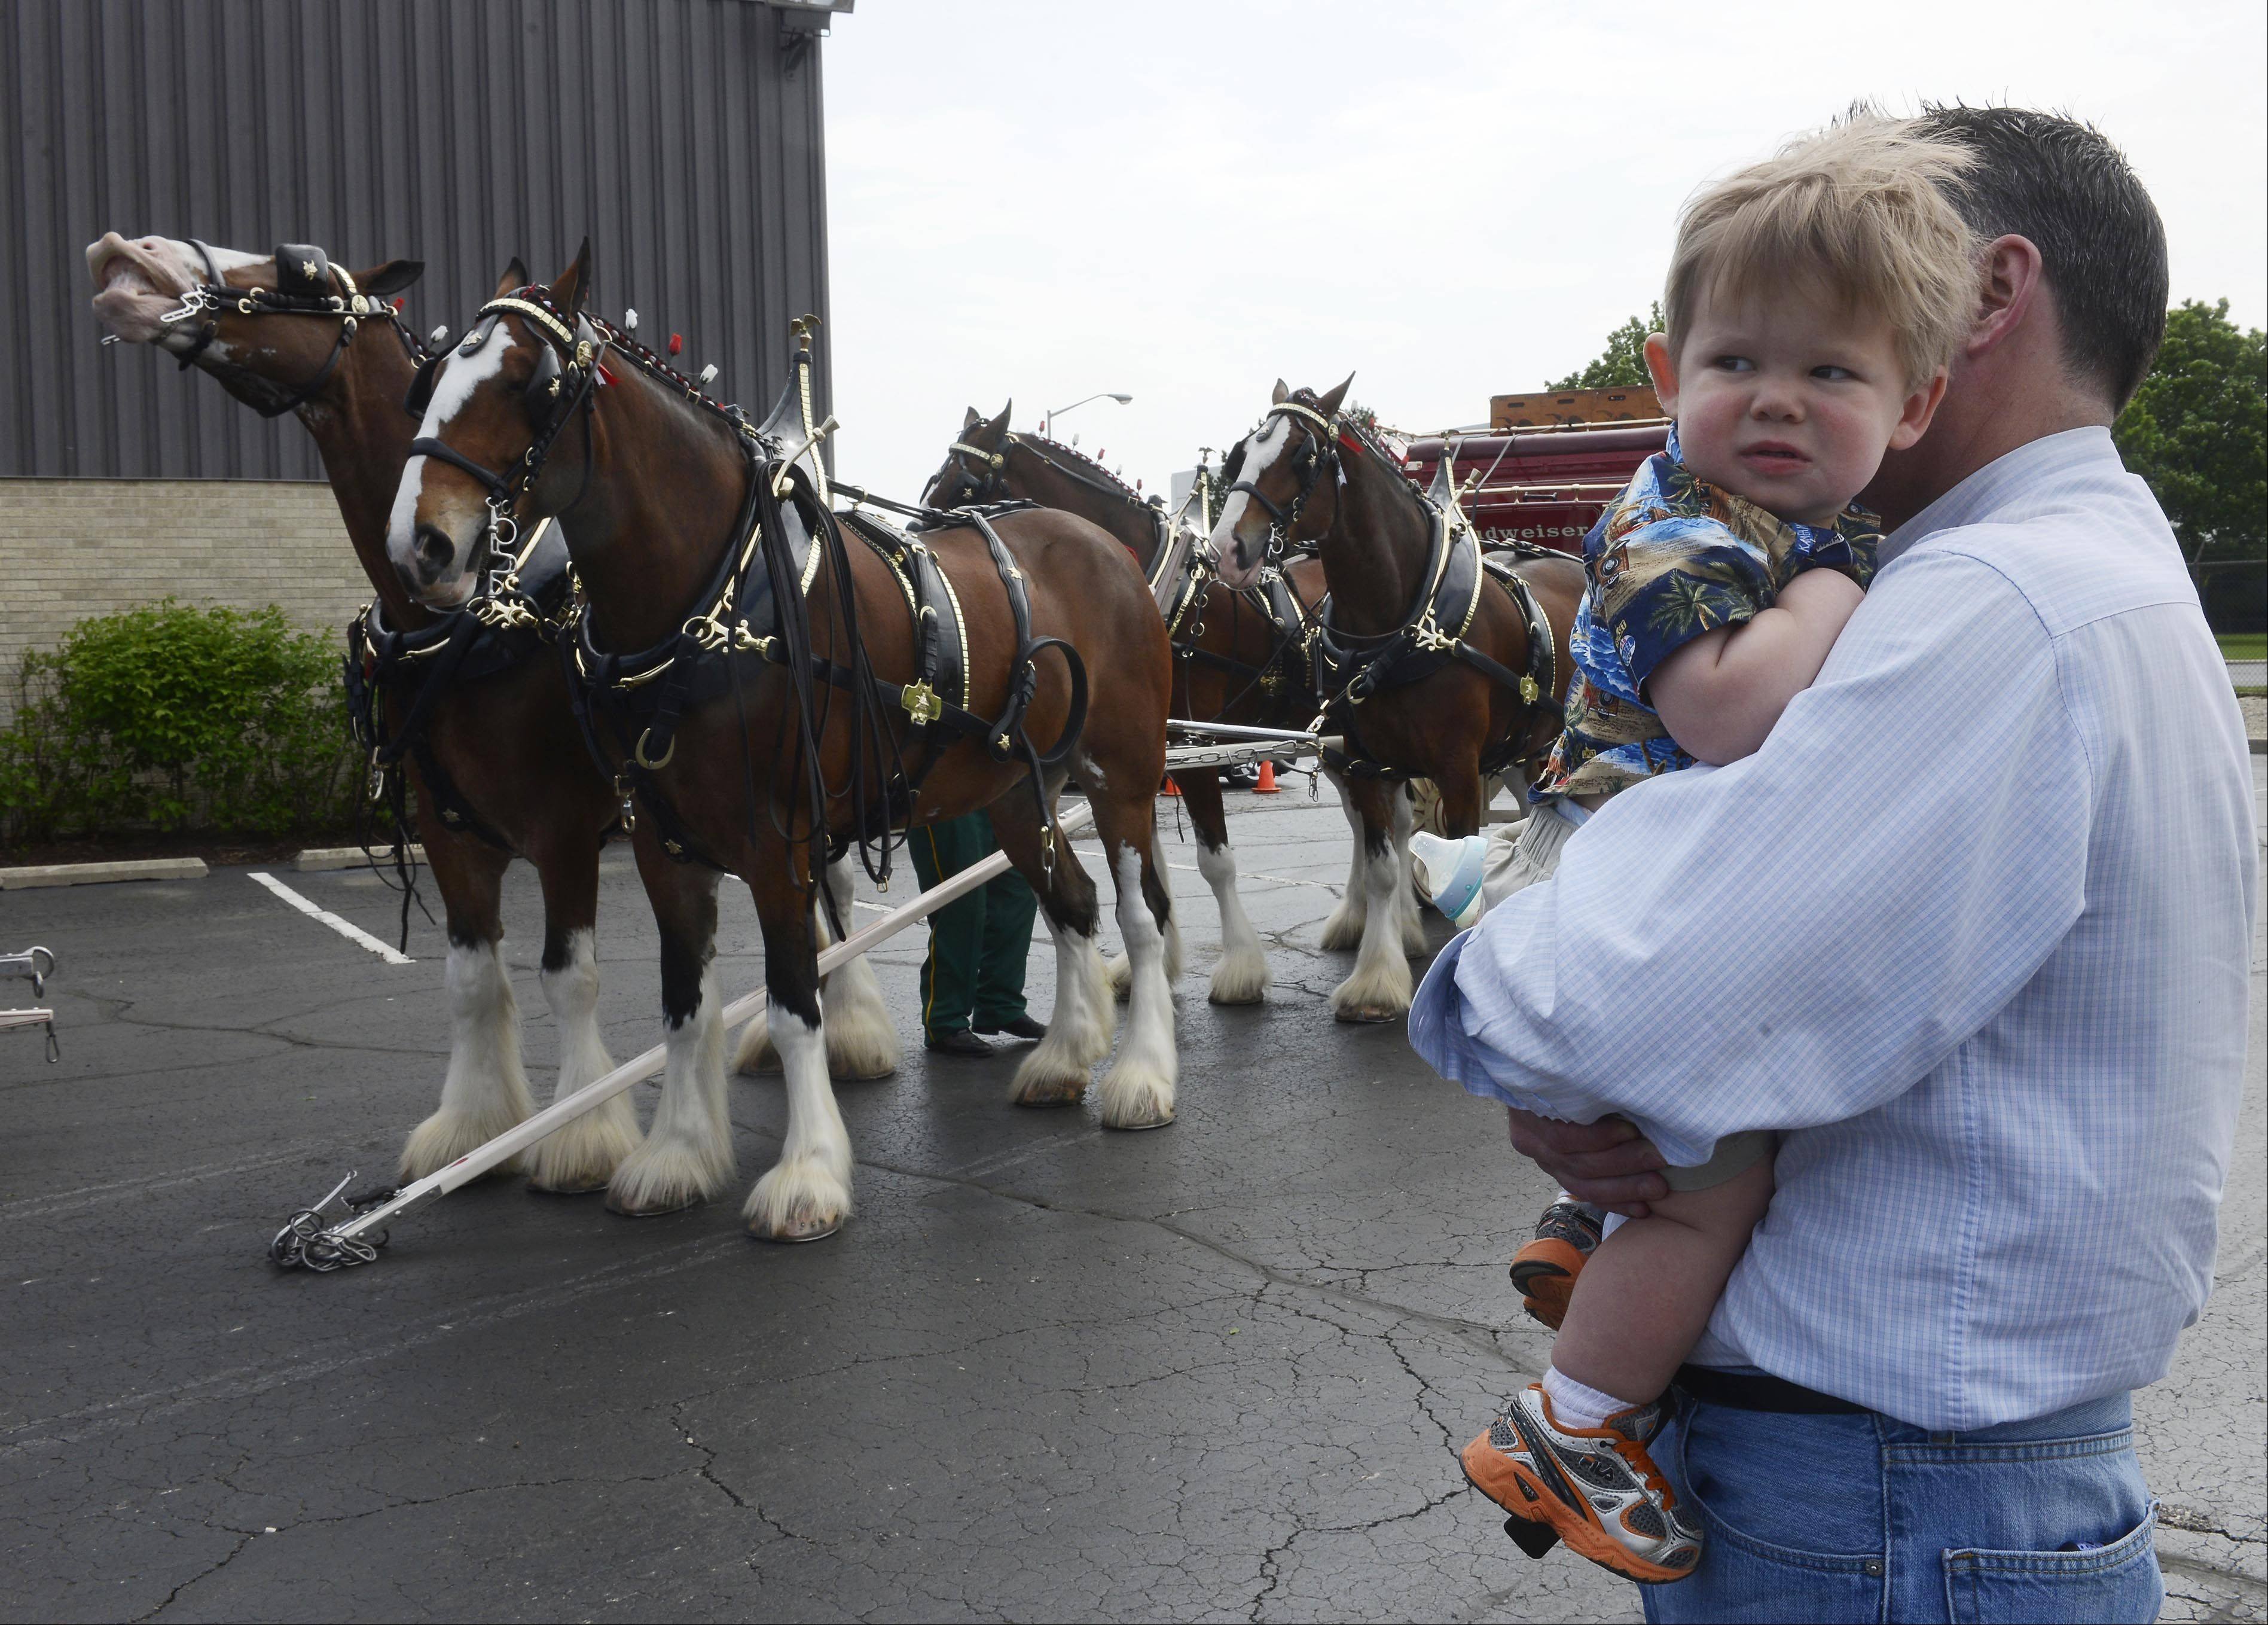 Chris Johnson, a City Beverage employee, and his 18-month-old son, Jacob, enjoy the Clydesdales Friday at the company party.